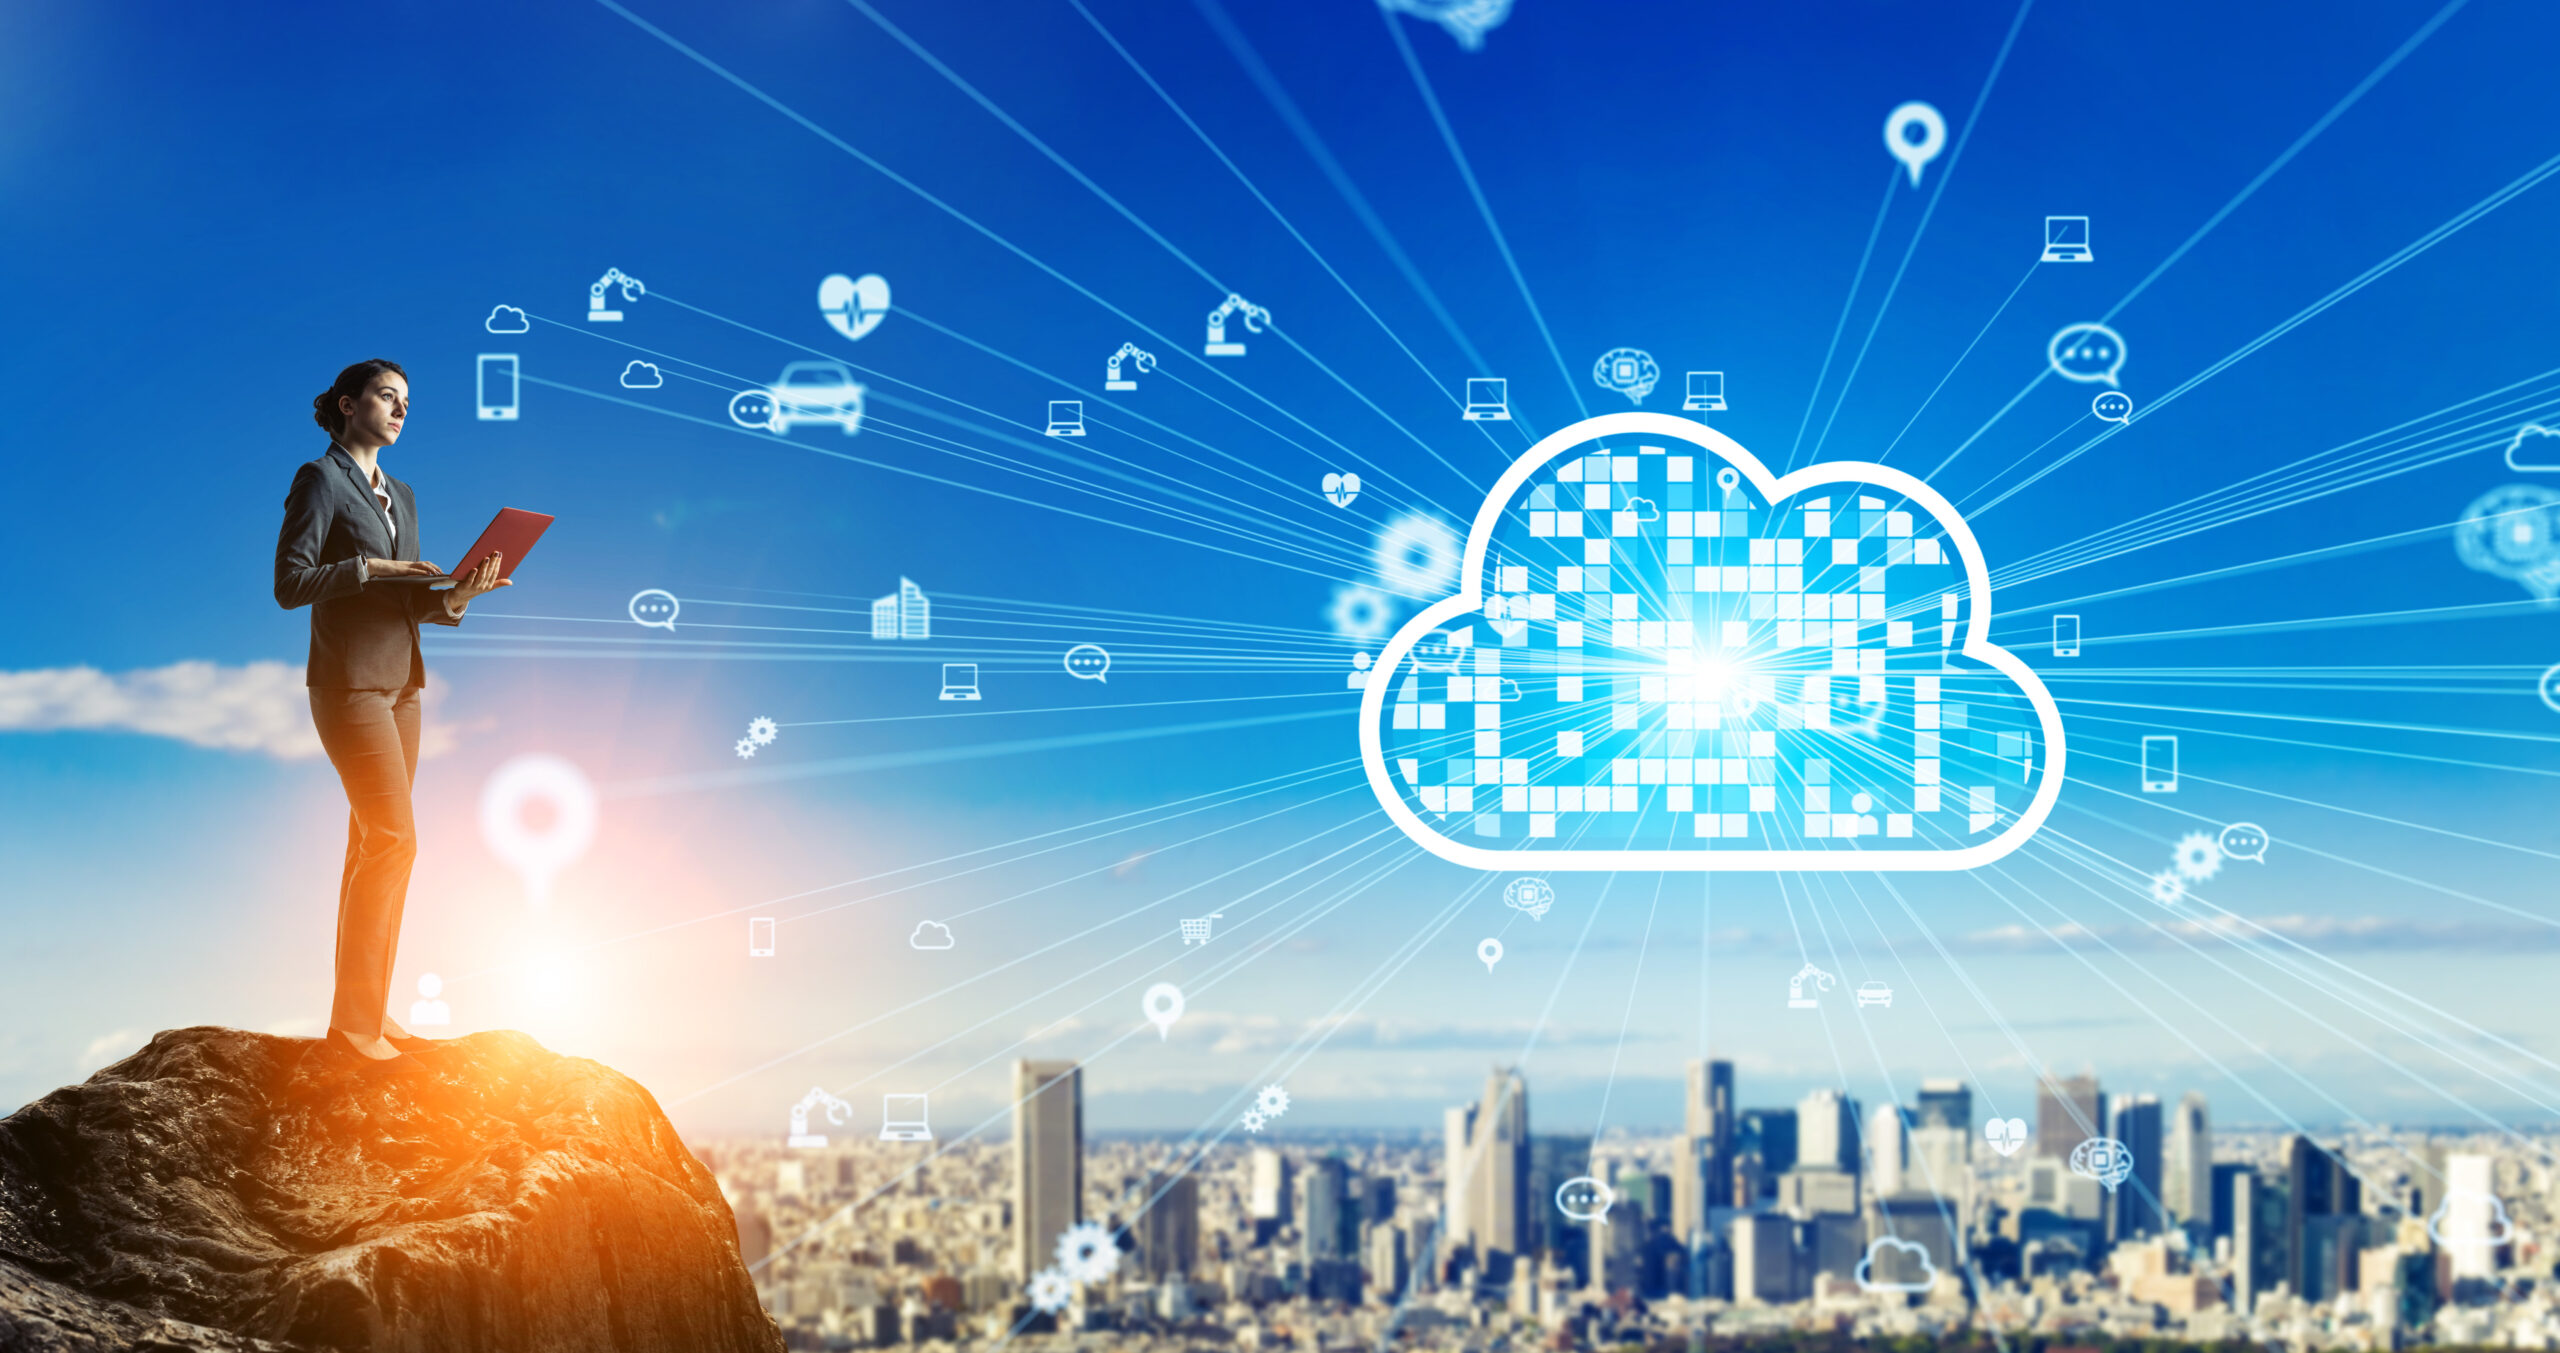 A Look at the Edge From the Perspective of Hyperscale Cloud Providers